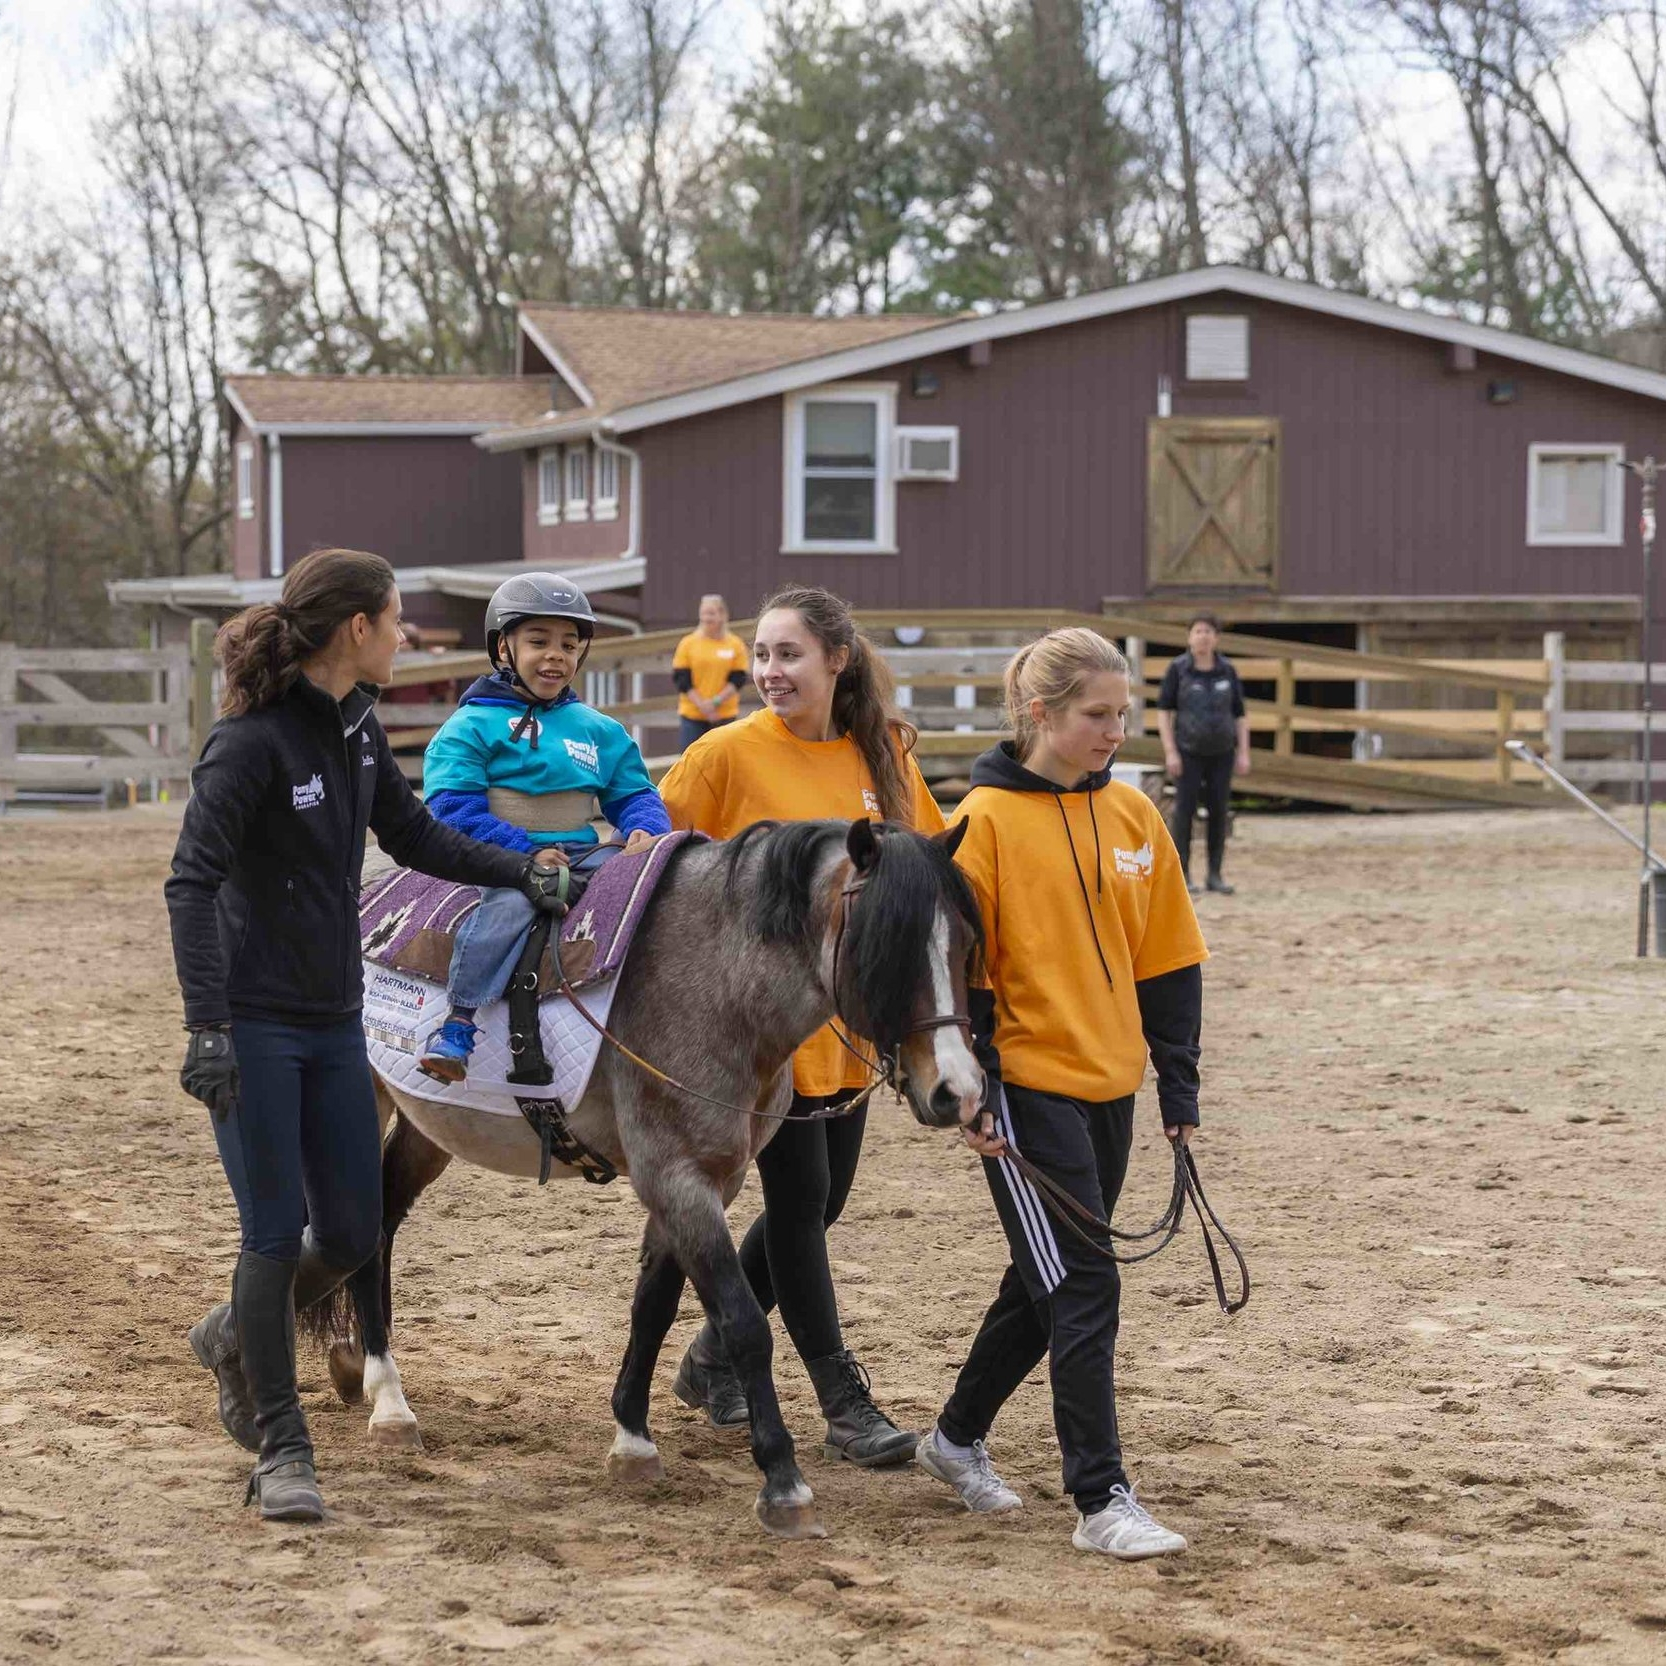 Donate - Make a meaningful gift today. Support our participants, ponies and programs.